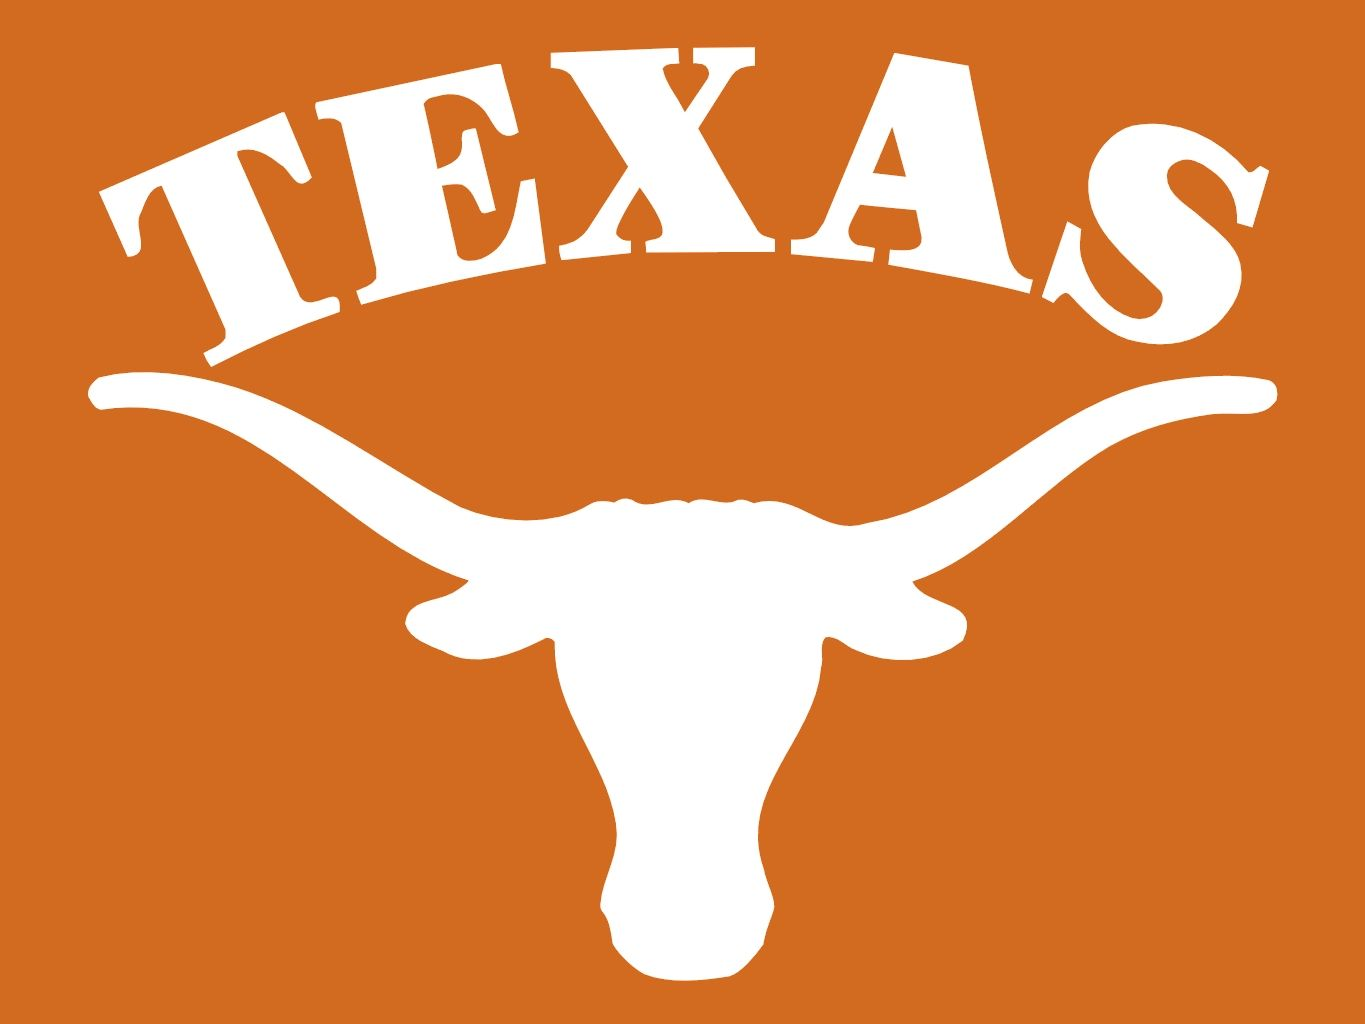 Click Each Preview To Download The Full Size Image | Texas longhorns  football, Texas longhorns logo, Longhorns football